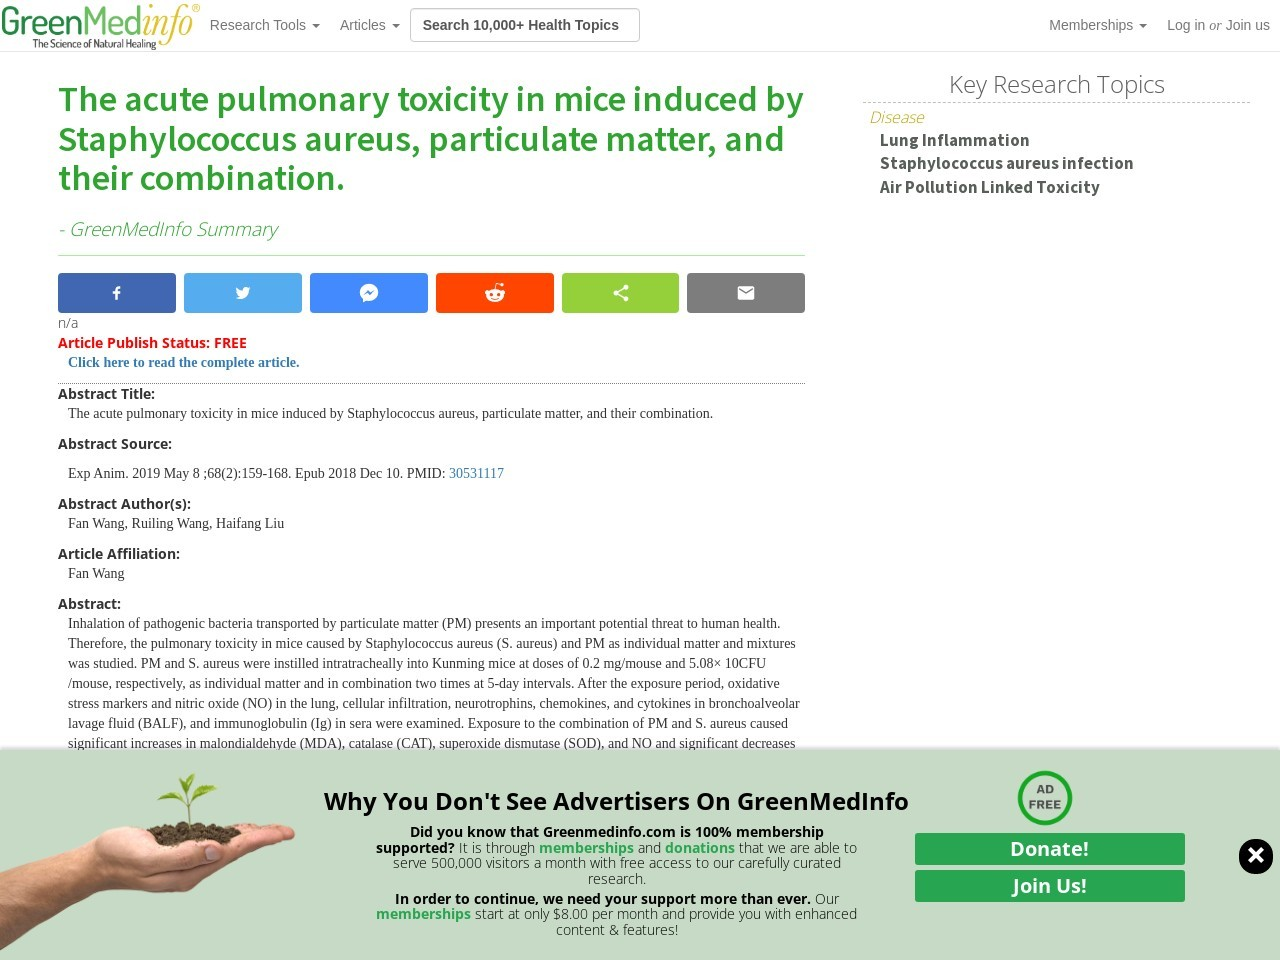 The acute pulmonary toxicity in mice induced by Staphylococcus aureus, particulate matter, and their combination.